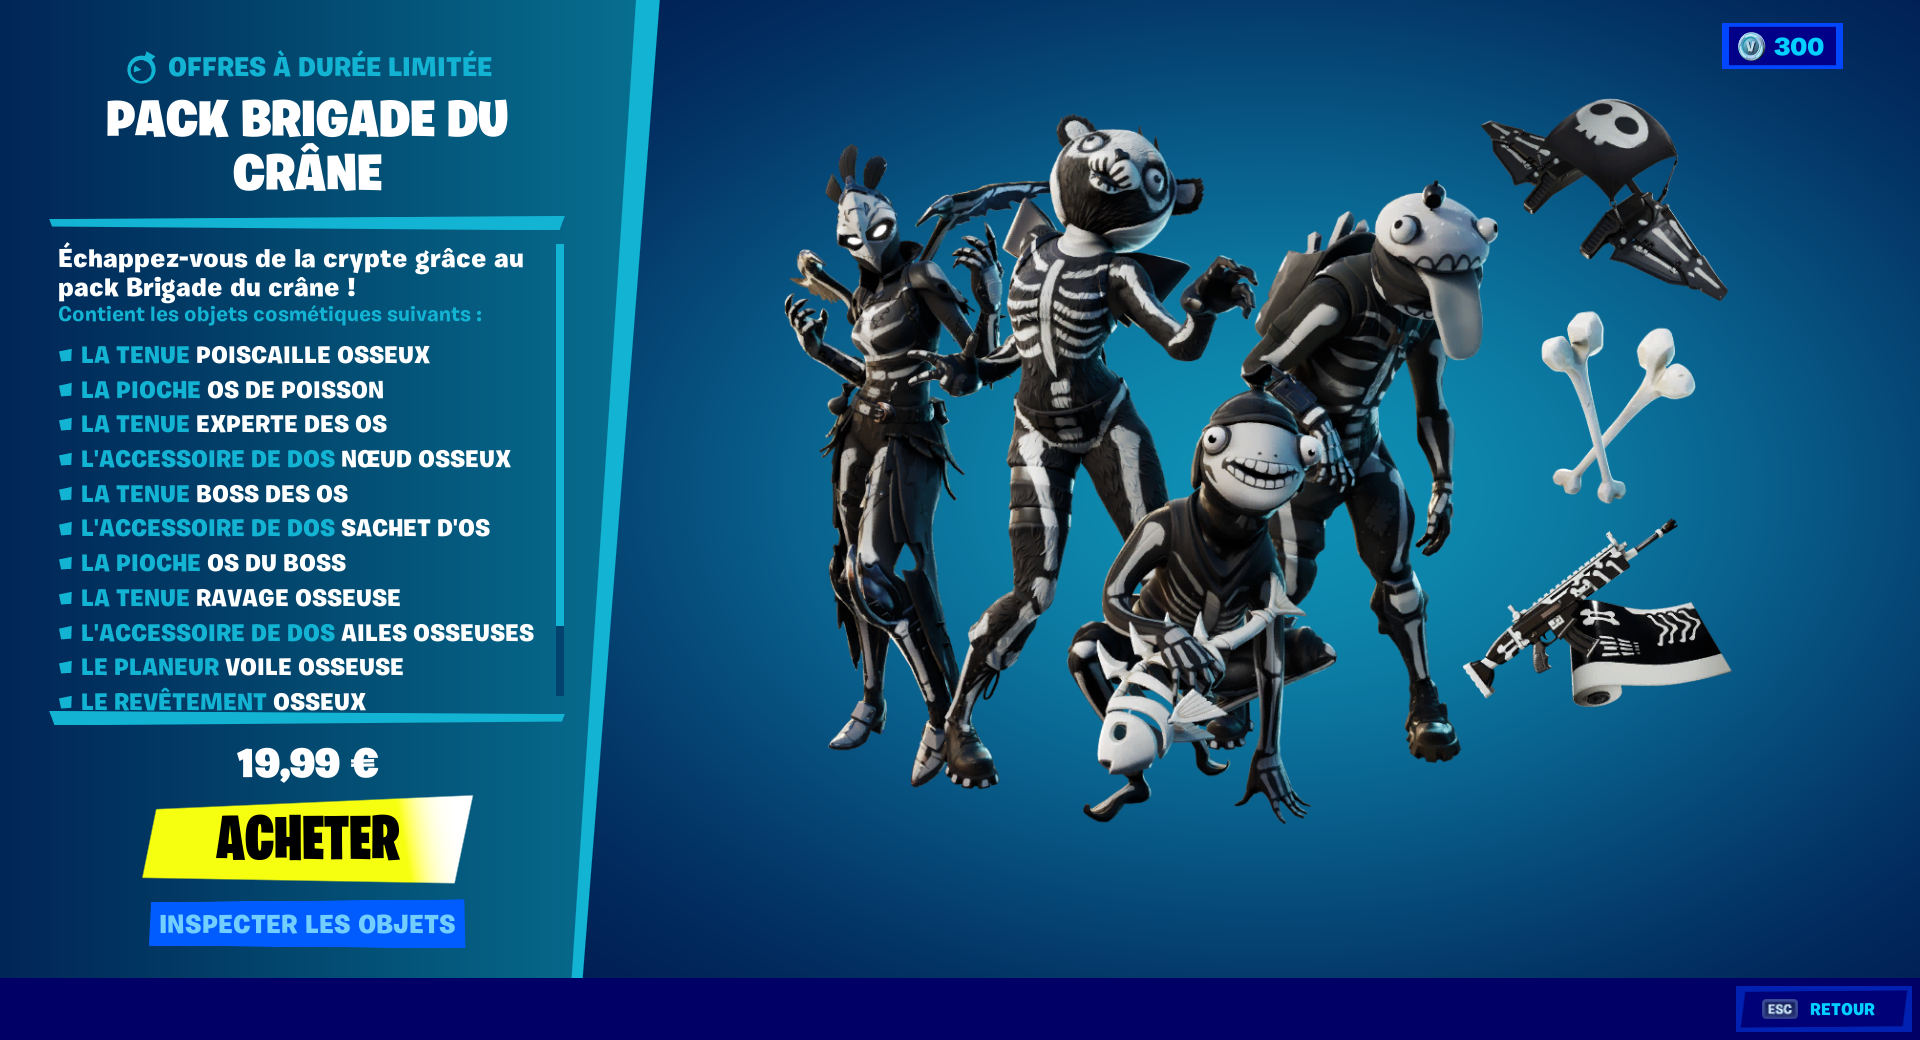 fortnite-brigade-crane-skin-pack